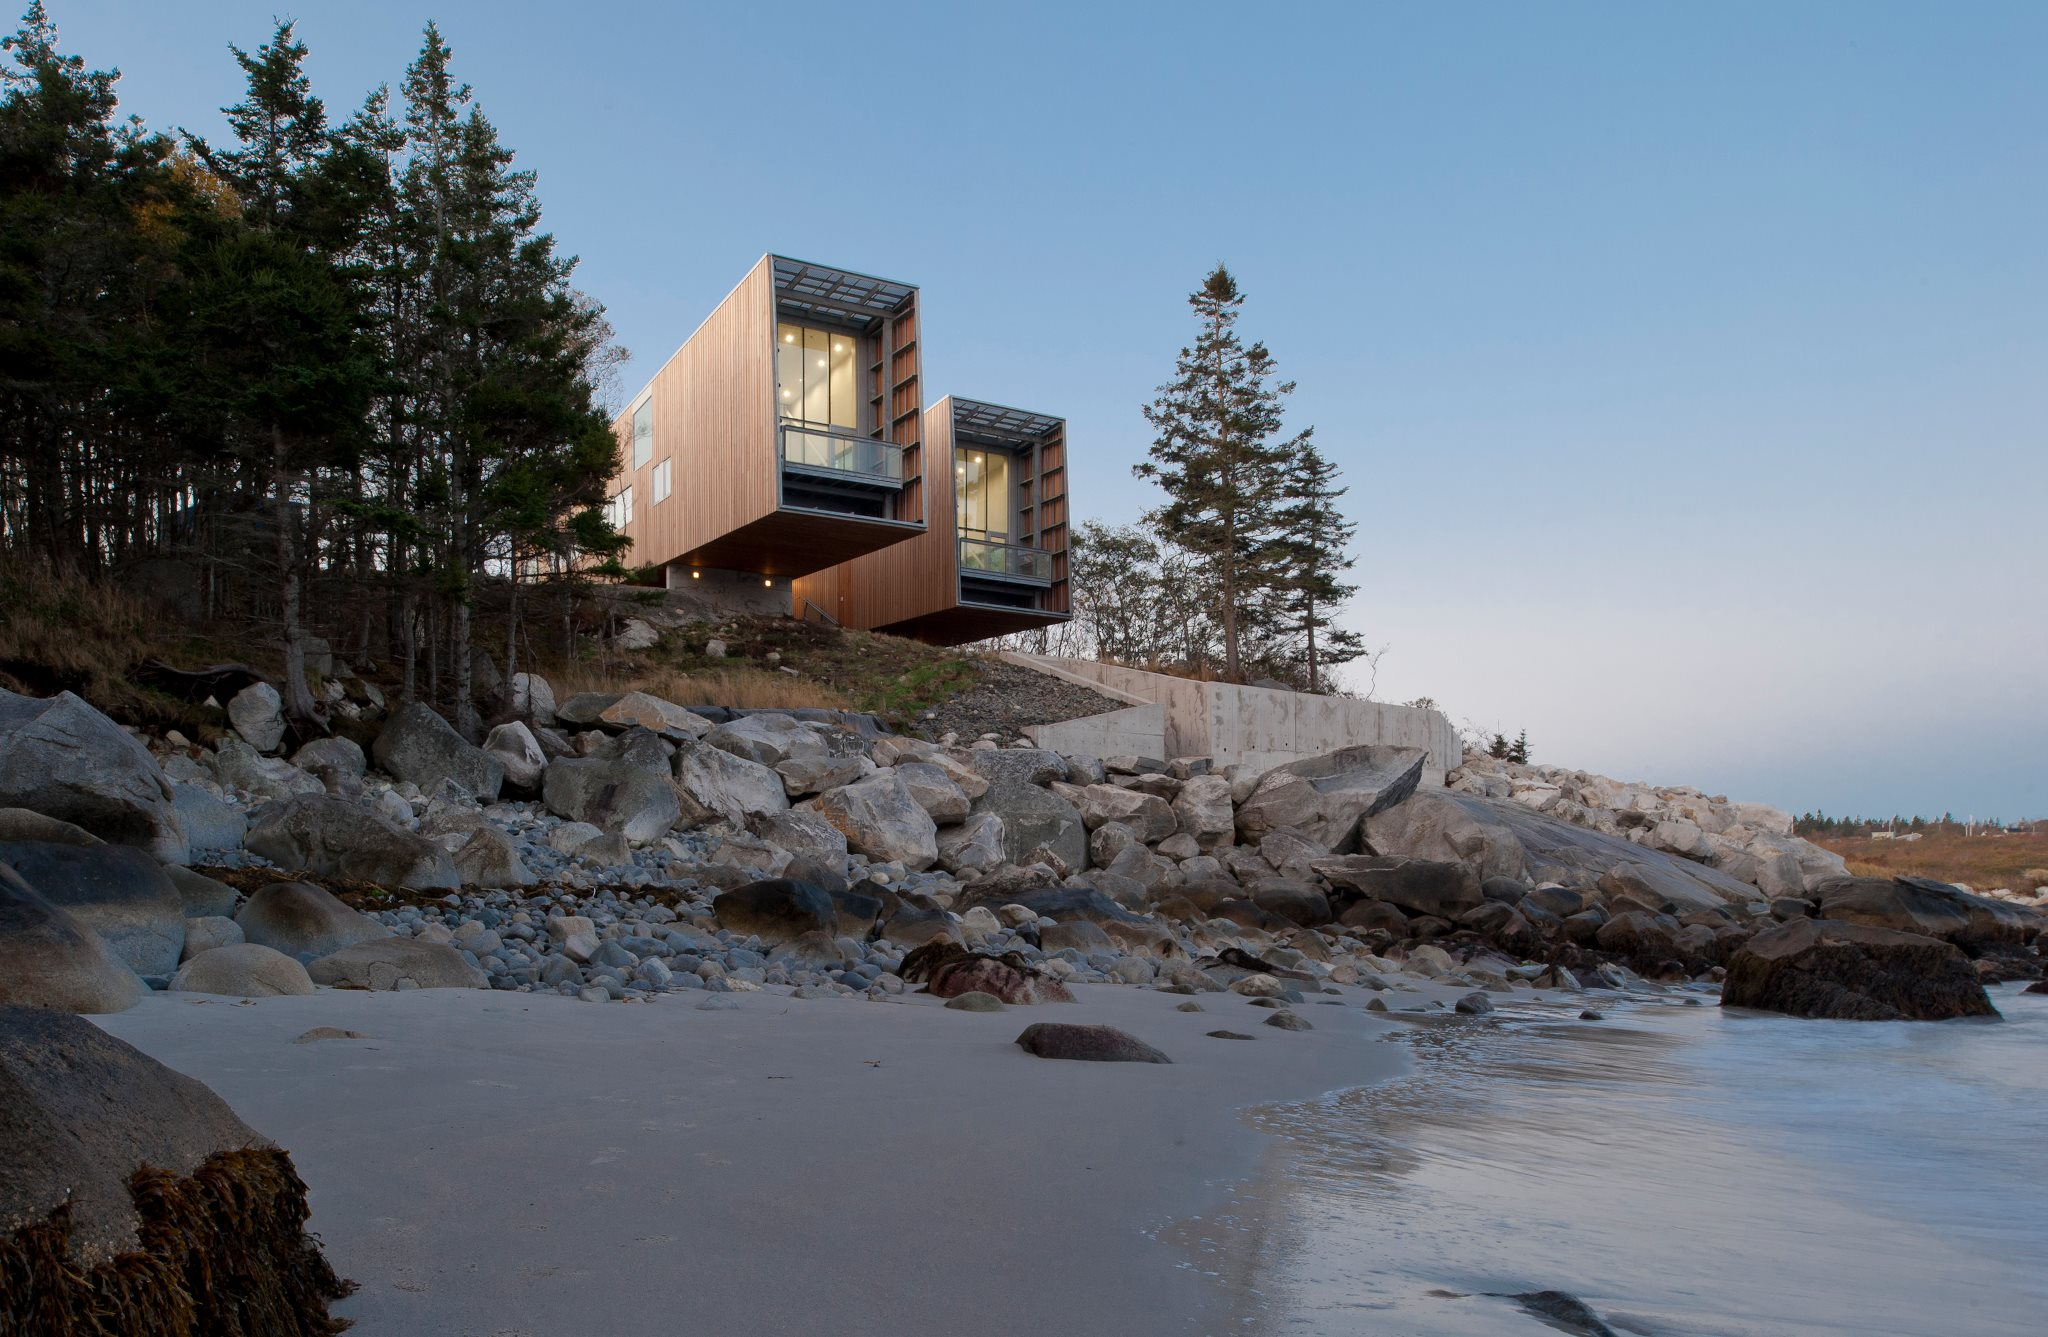 Two Hull Houses - Nova Scotia, Canada - photo courtesy of MacKay-Lyons Sweetapple Architects Ltd.